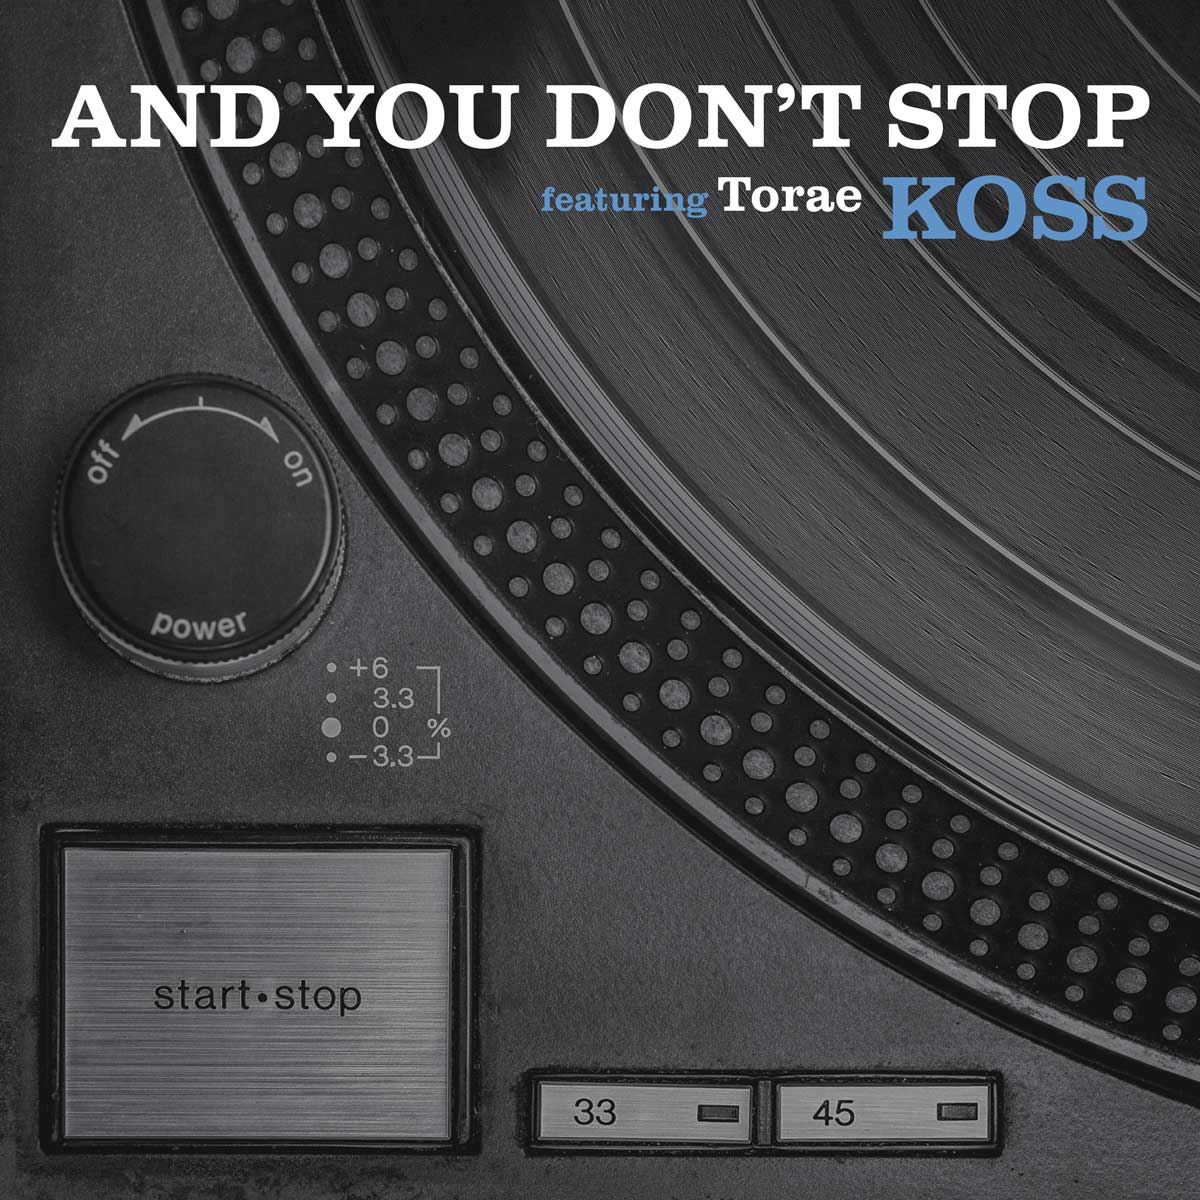 Koss - And You Don't Stop